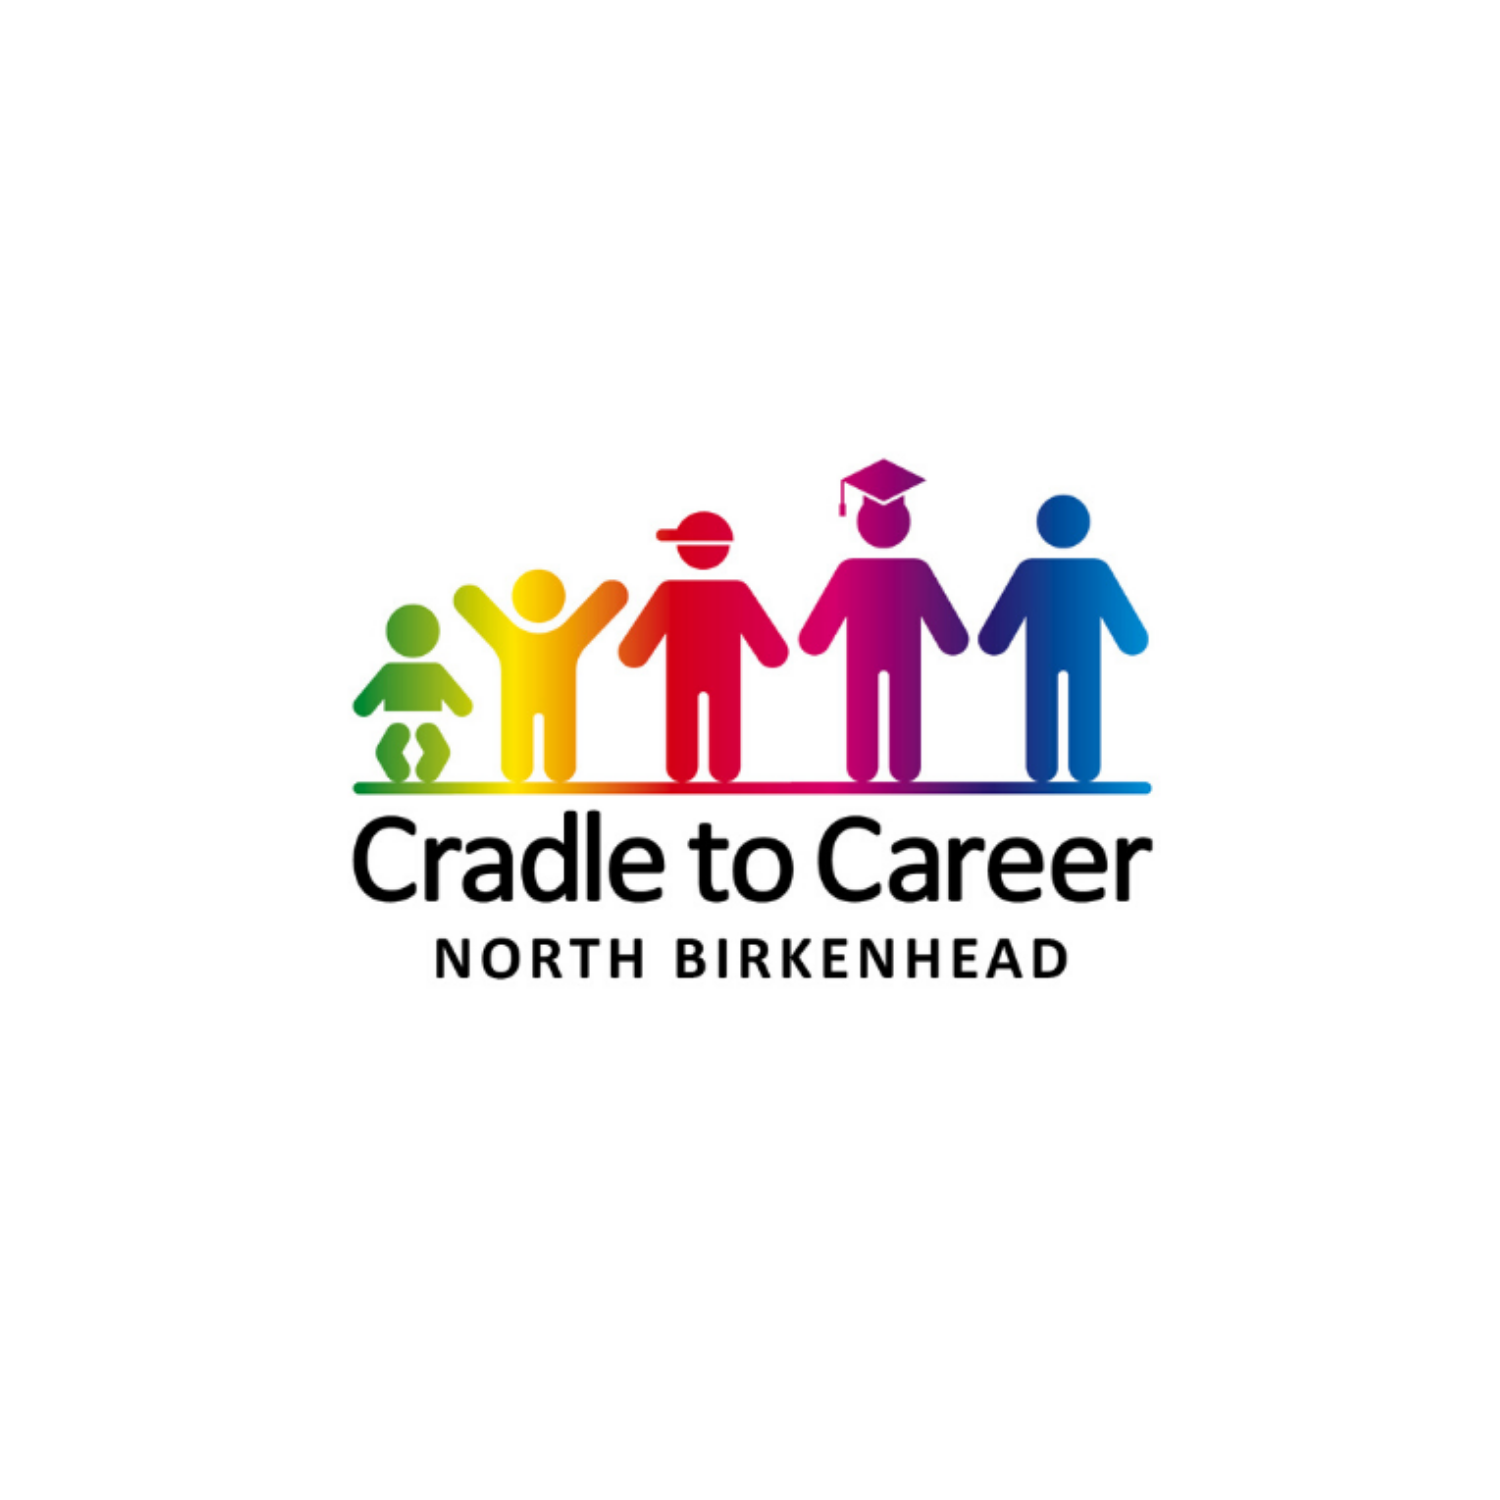 Cradle to Career